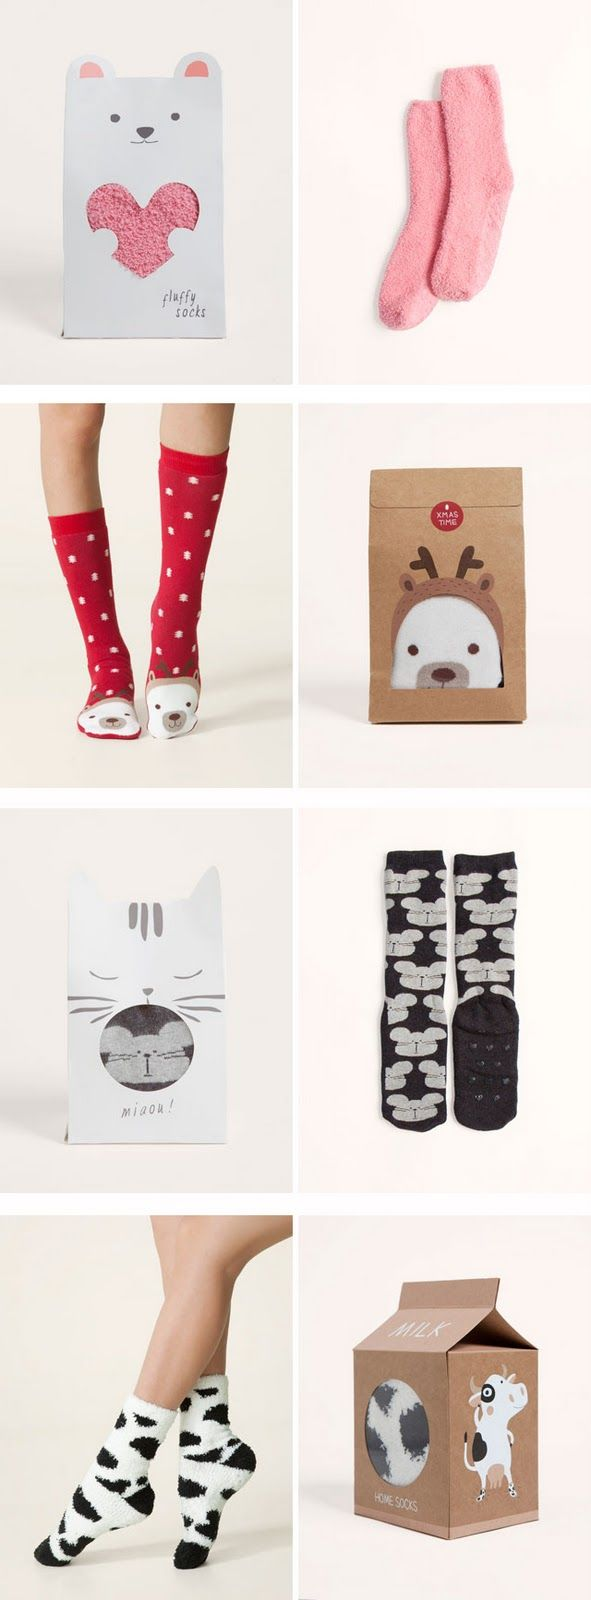 el packaging de Oysho is a great collection of the cutest sock #packaging PD  I love these packaging, but my favorite is the one with the cow socks. Using the milk carton idea is so clever and keeps it fun!